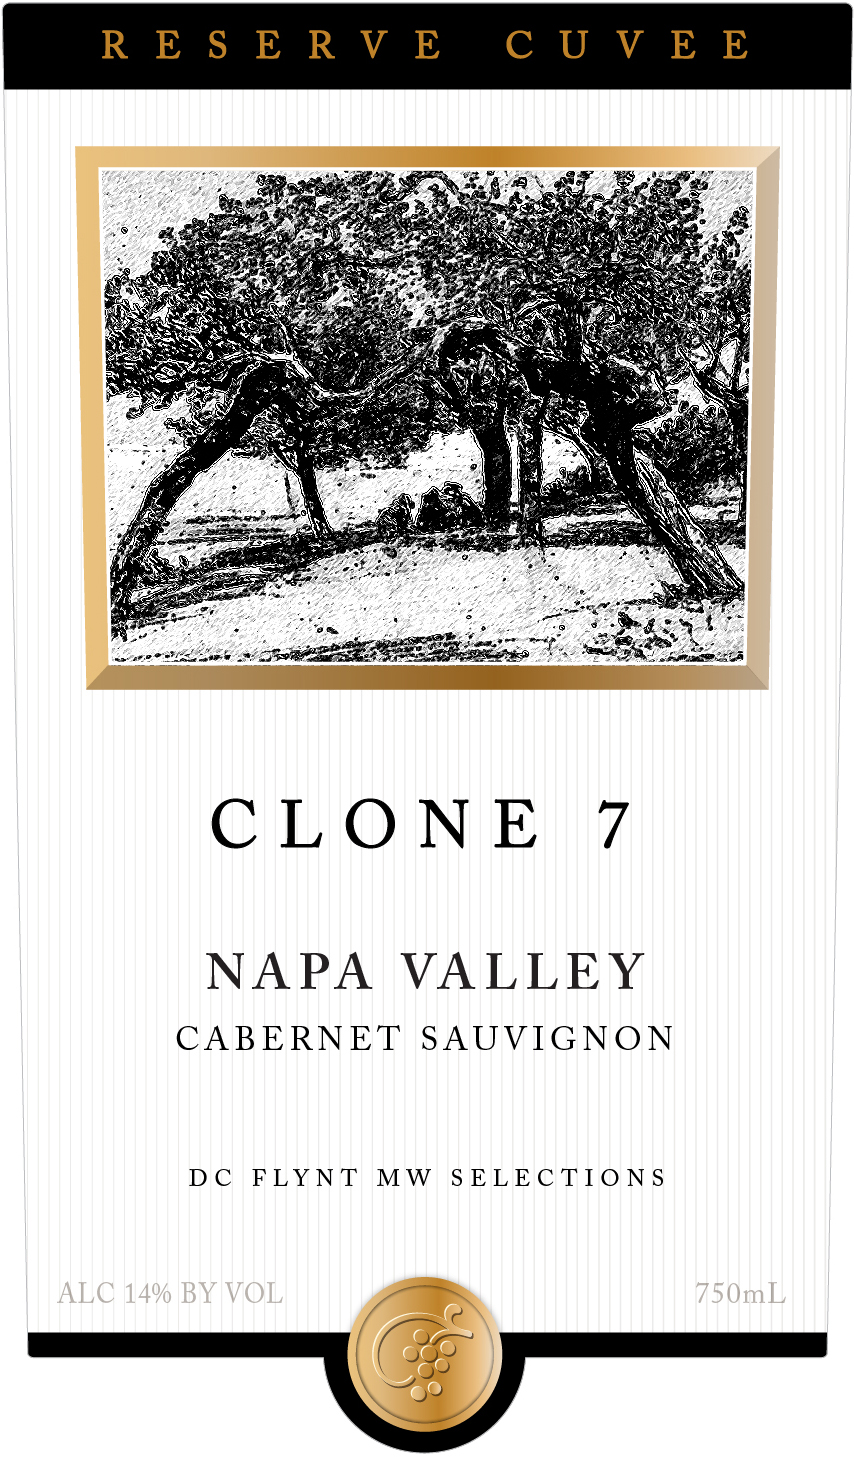 Clone 7 Reserve Cabernet Sauvignon (Napa Val­ley) has all the hallmarks of a modern Napa wine of high quality. Although it's quite dry, it's rich in crushed ripe blackberries, in good alignment with smoky new oak. The tannins are smooth and complex, the acidity just fine with a long lingering elegant finish.